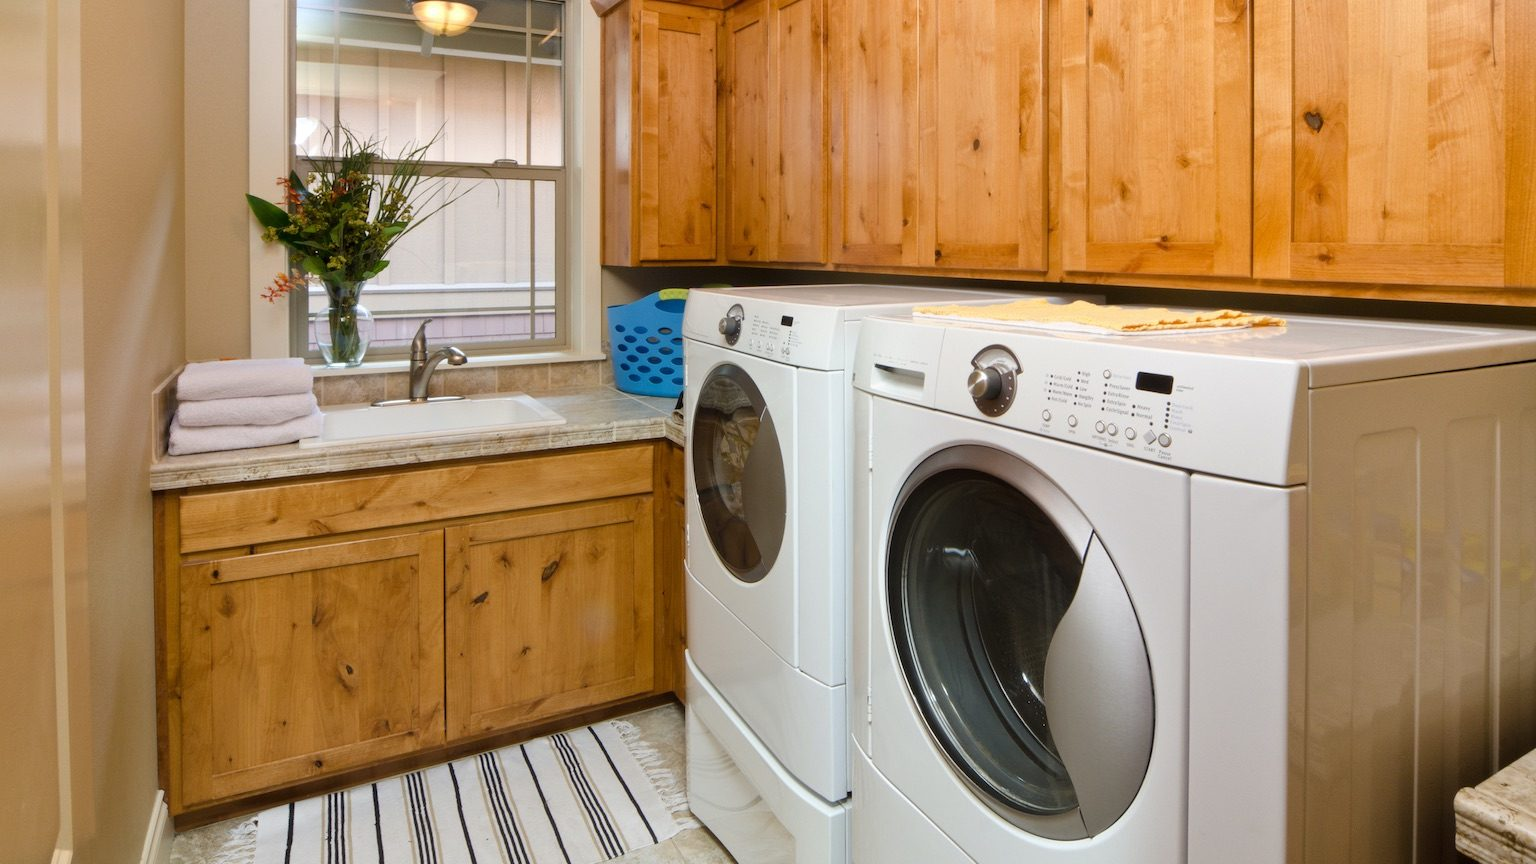 modern laundry room with front loading washing machine and dryer